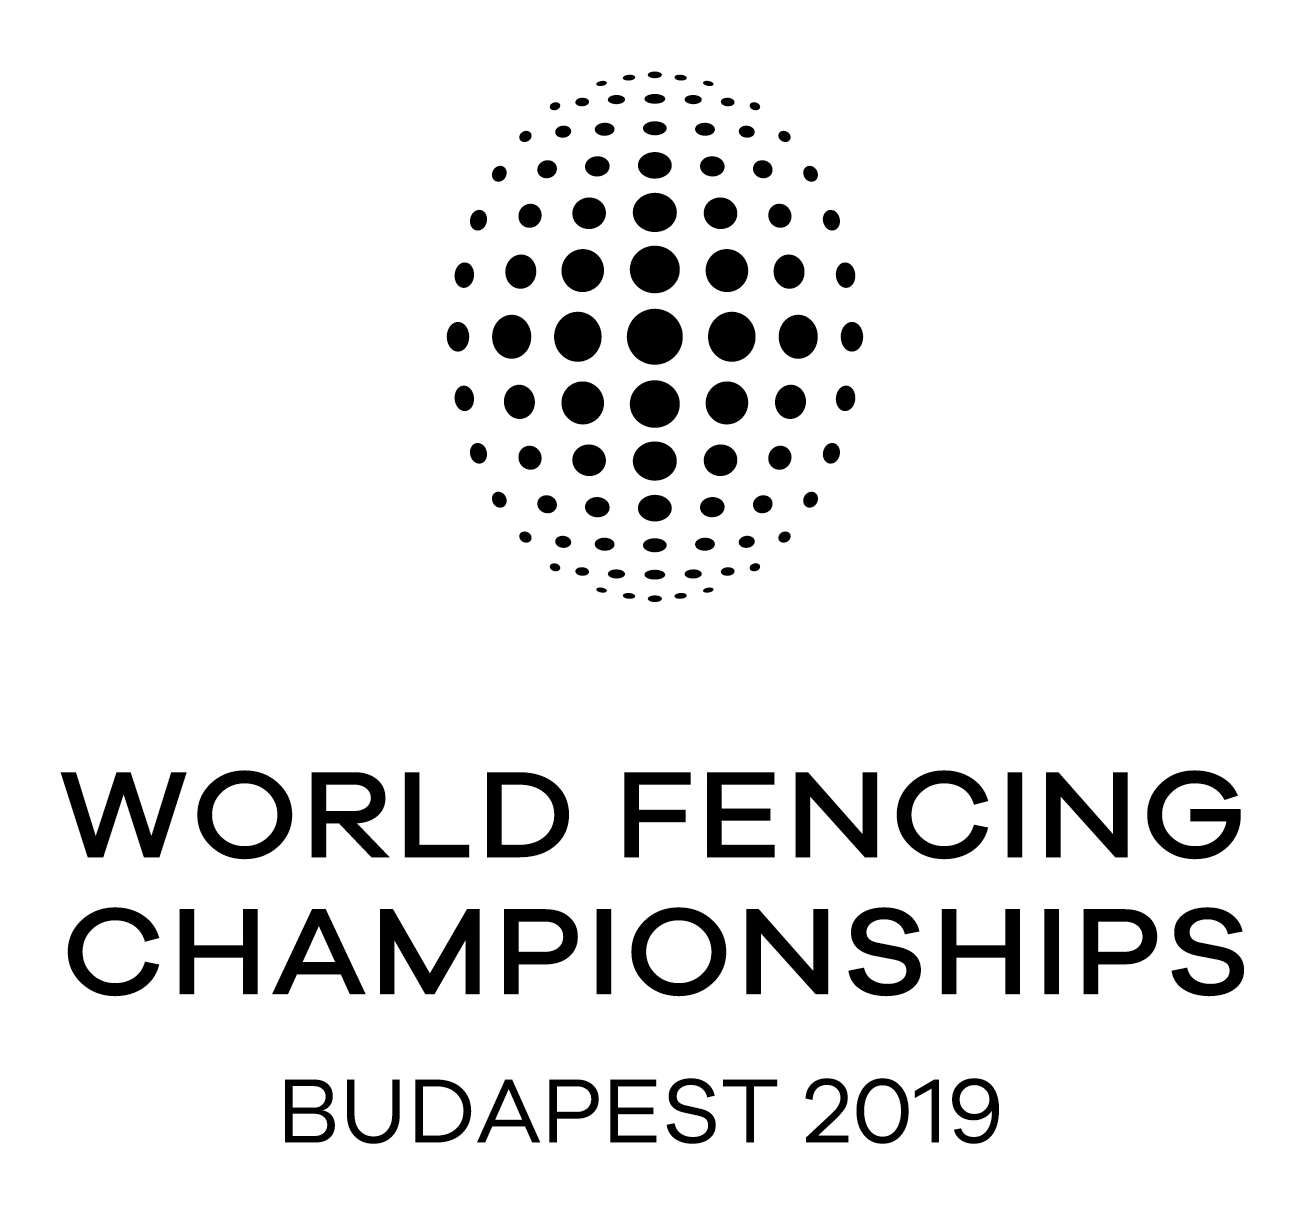 New Logo and Identity for 2019 World Fencing Championships by Explicit Design Studio